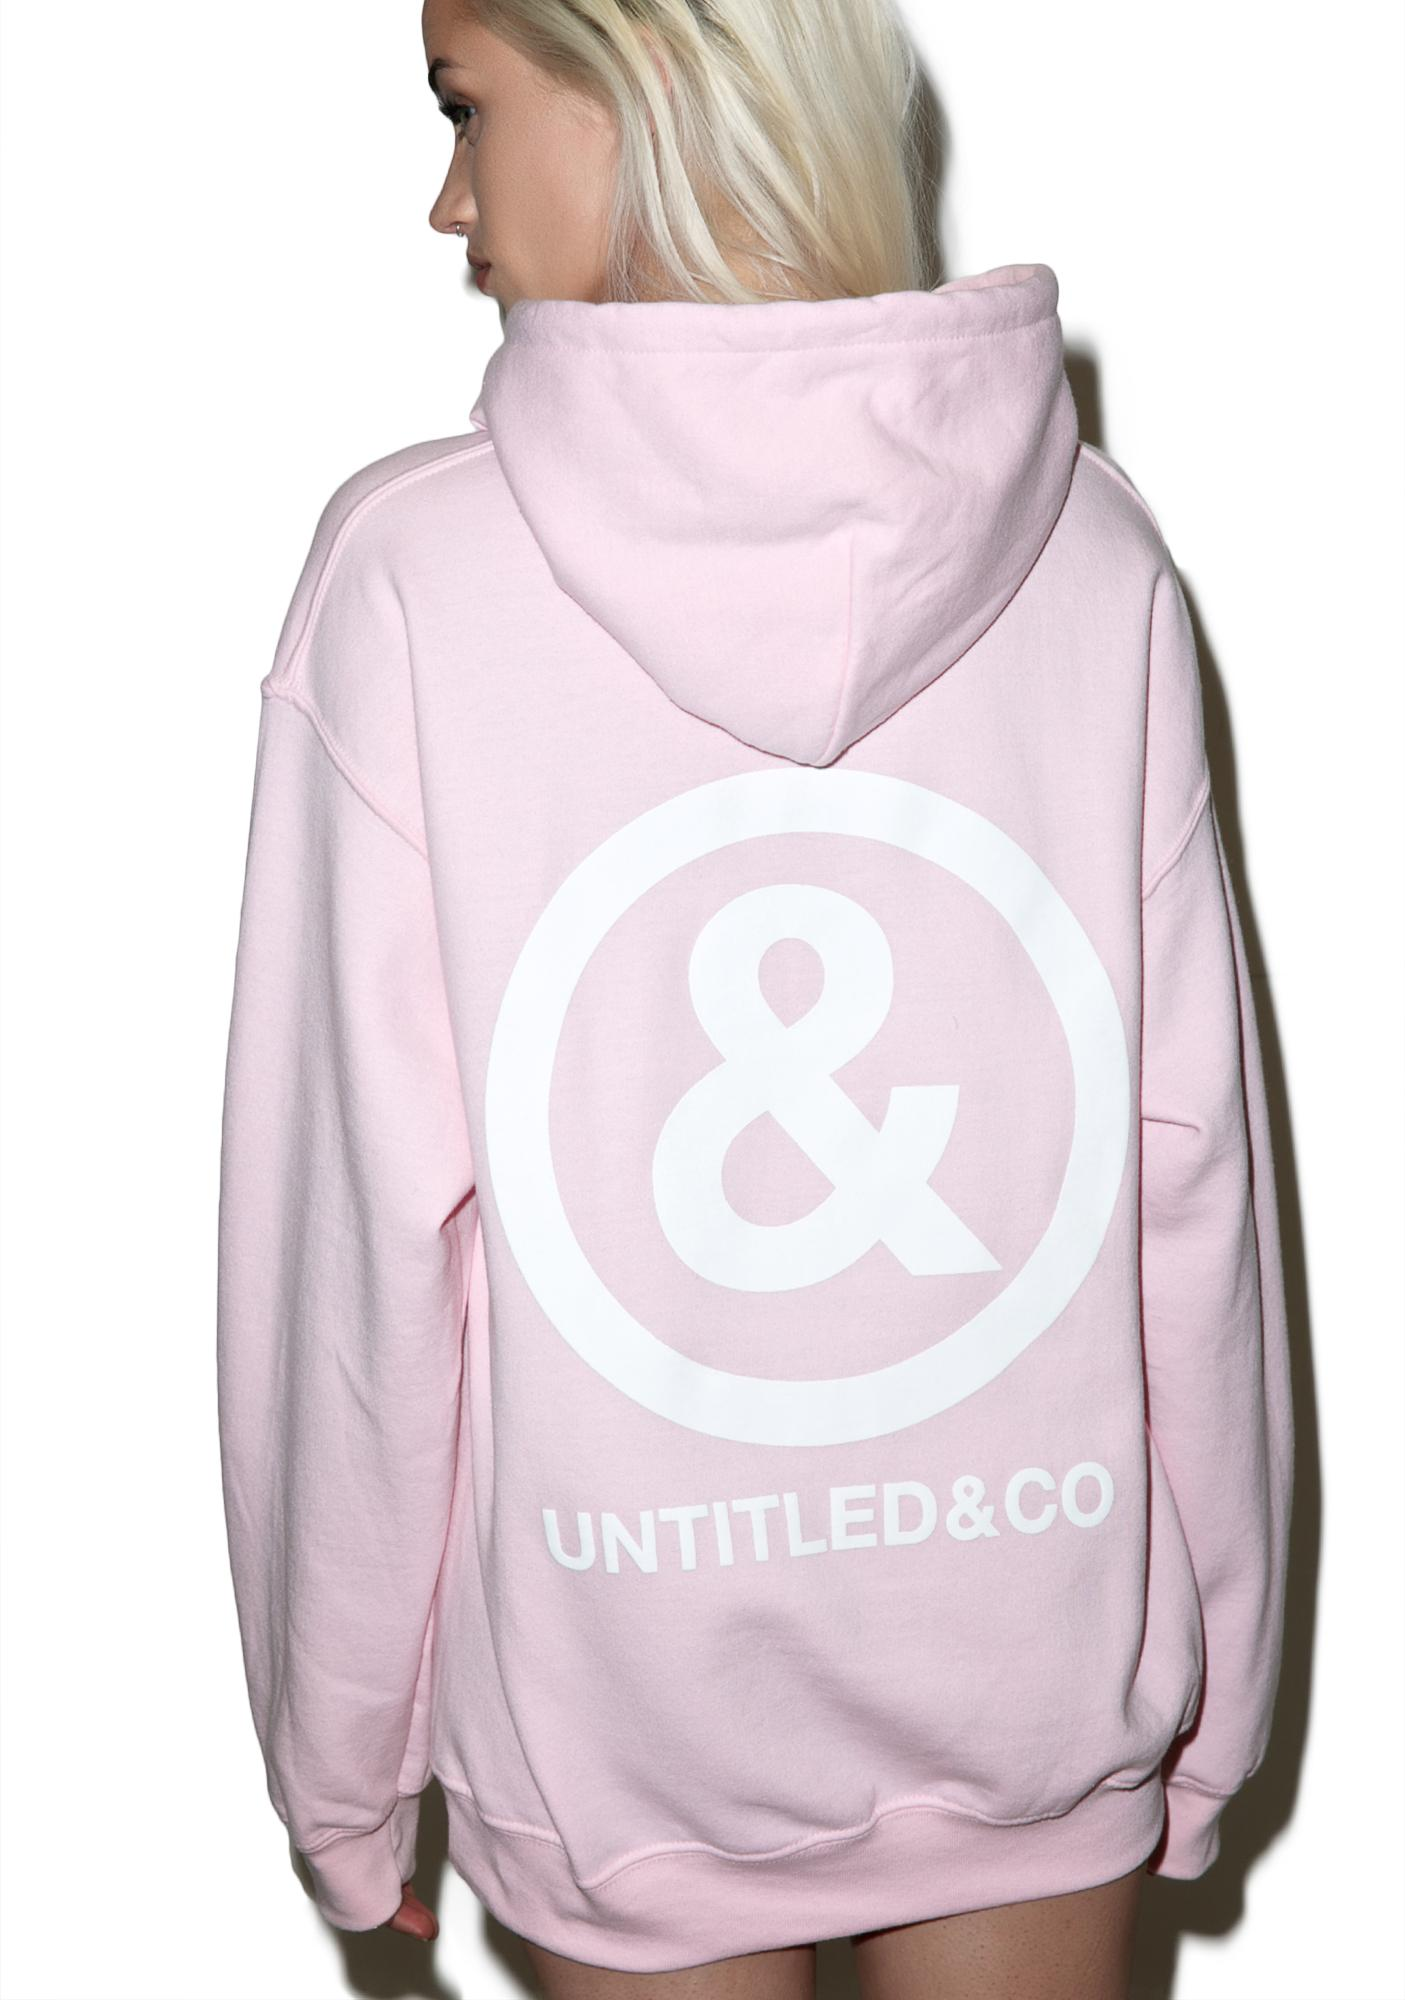 Untitled & Co Baby Pink Logo Hoodie